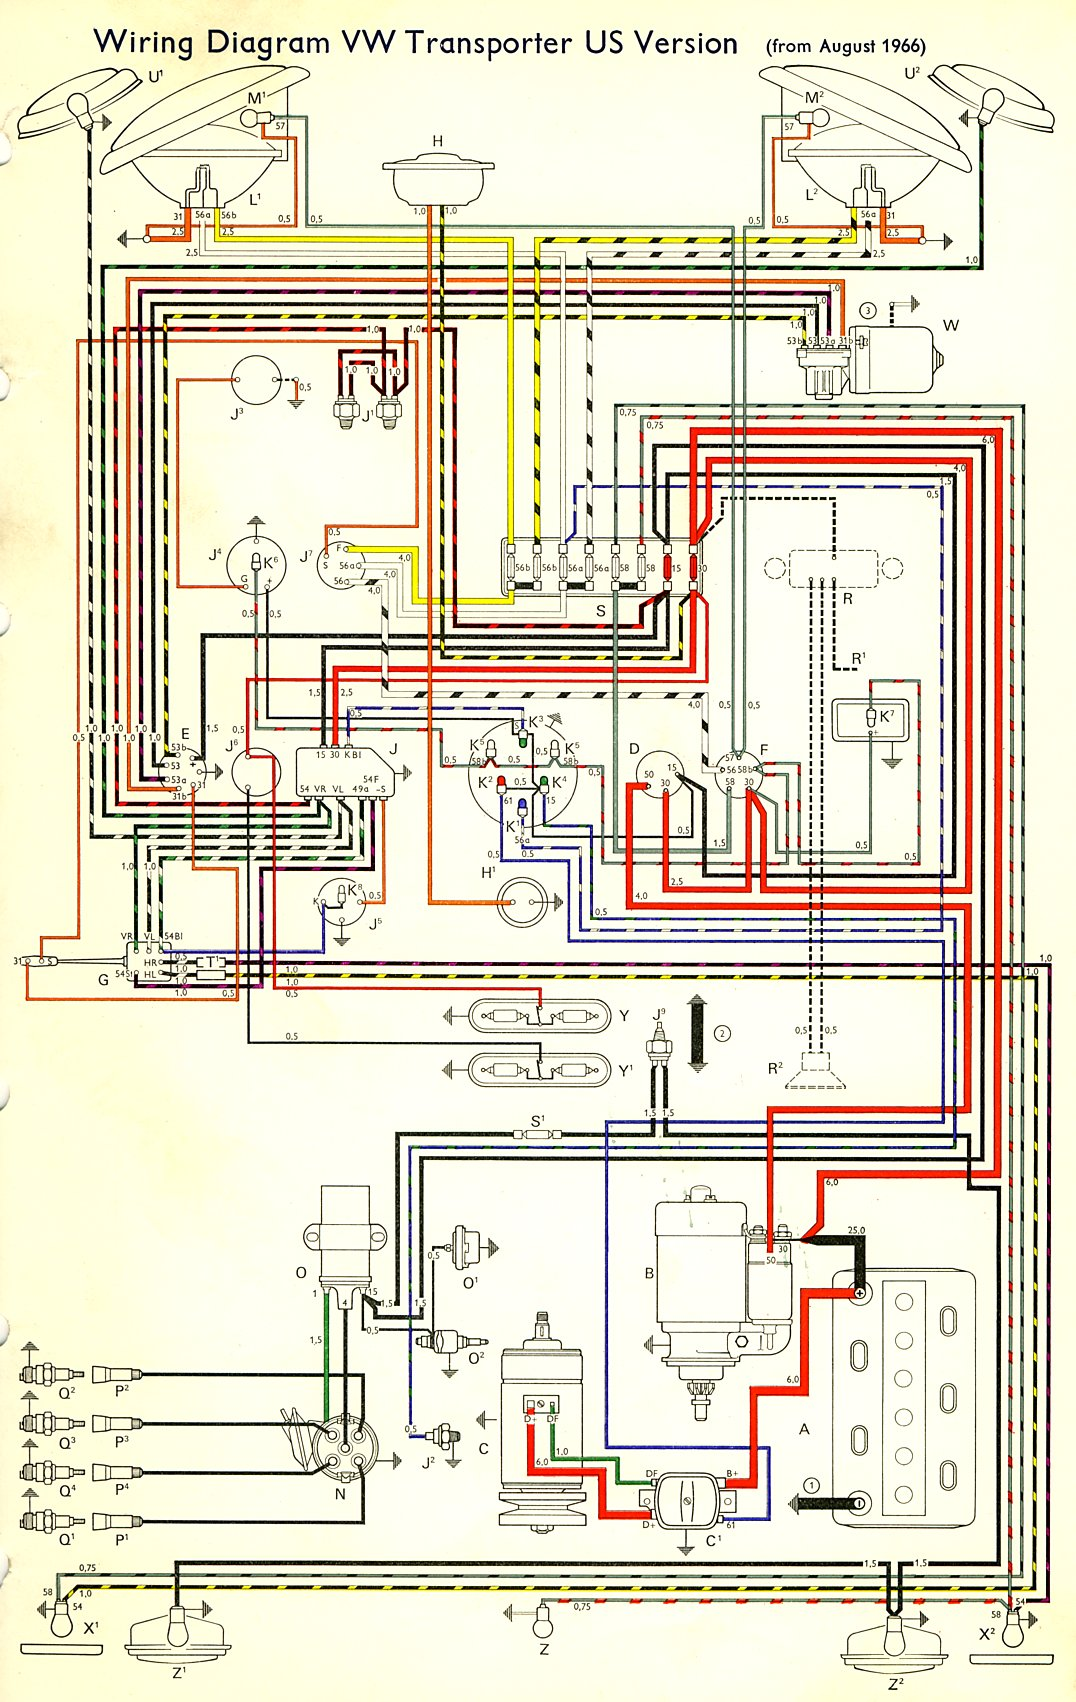 hight resolution of 1957 vw wiring diagram wiring diagrams scematic 1973 vw beetle wiring diagram 1957 vw wiring diagram